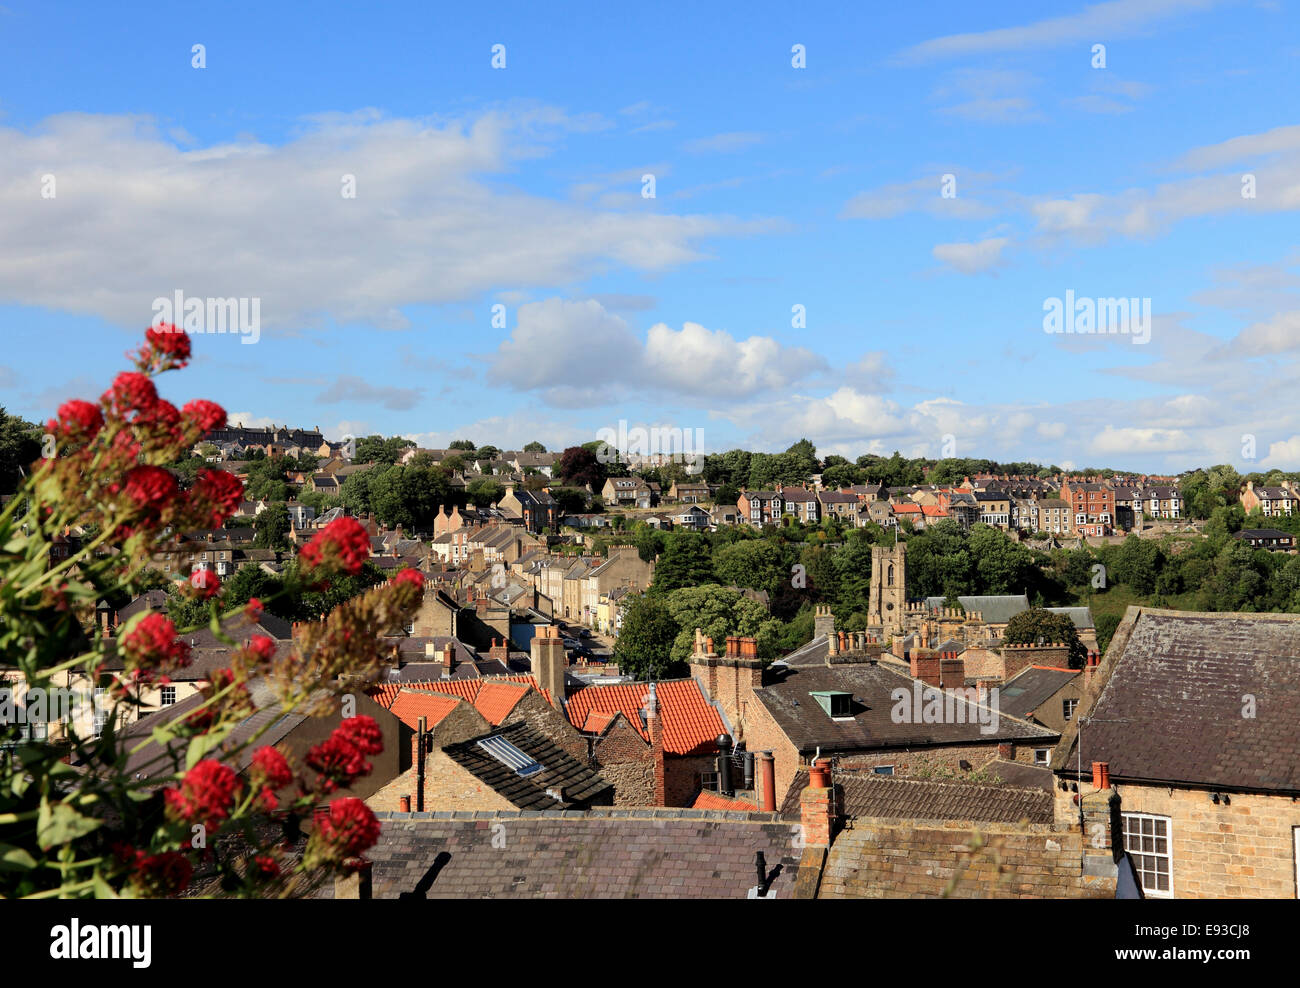 3261. Richmond, North Yorkshire, UK Stock Photo